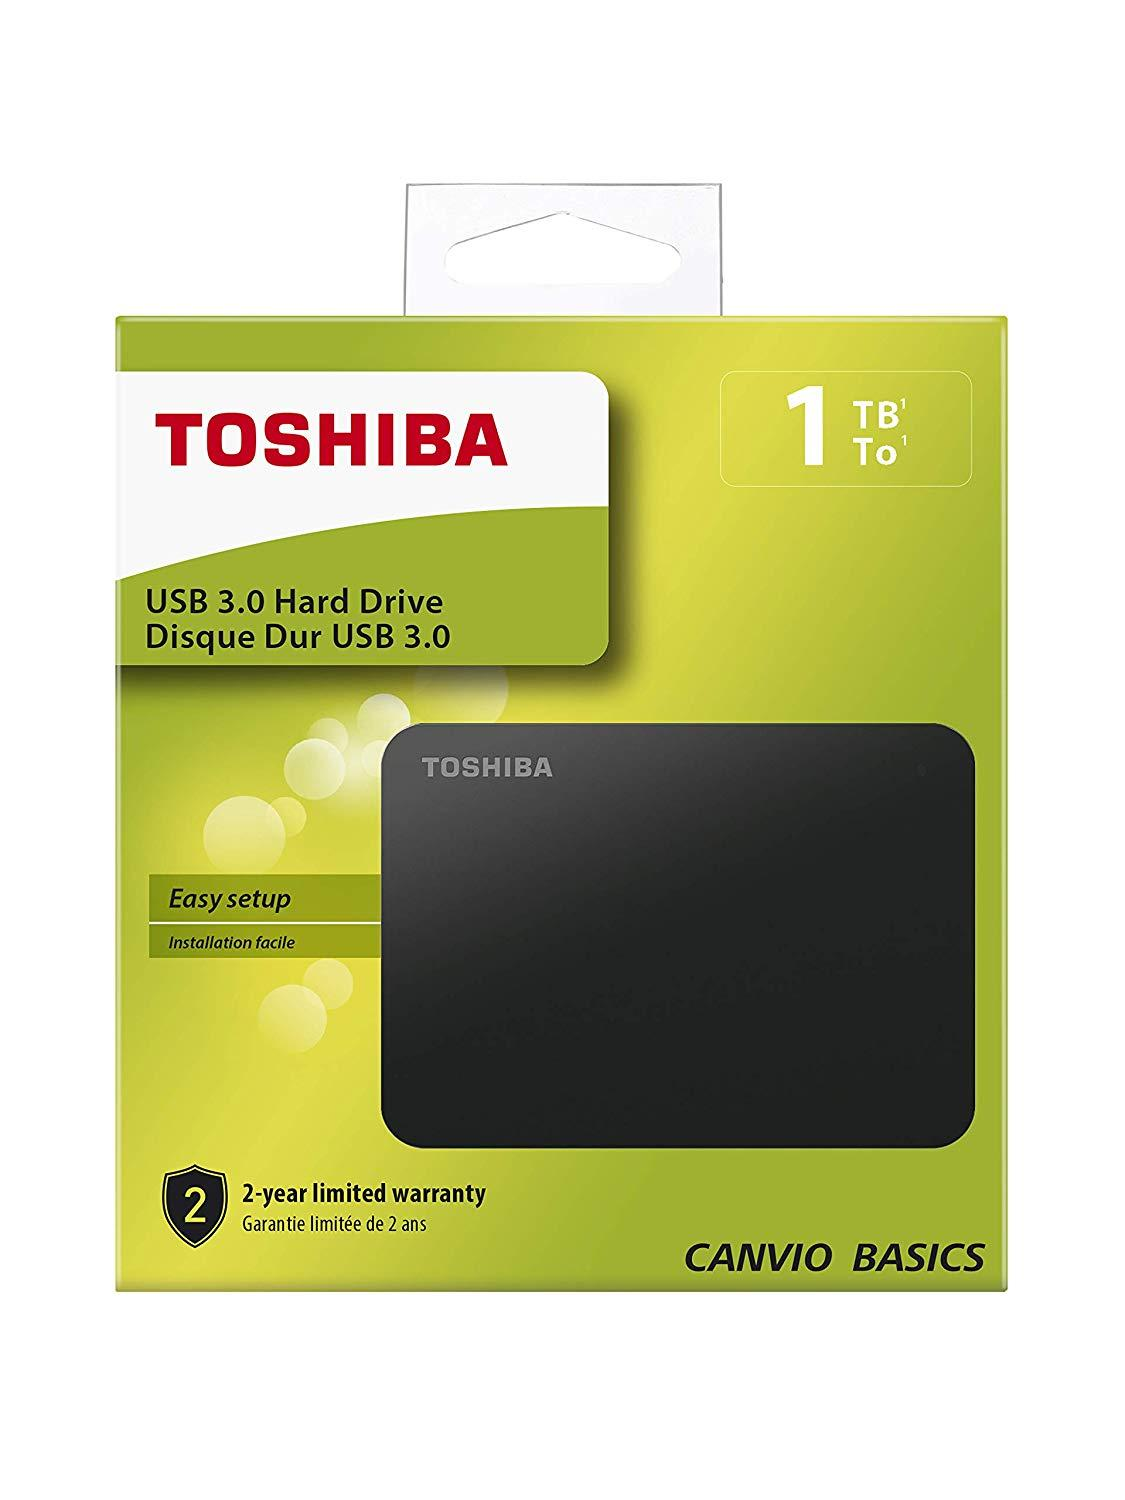 Външен хард диск Toshiba Canvio Basics, 1TB, 2.5 HDD, USB 3.0